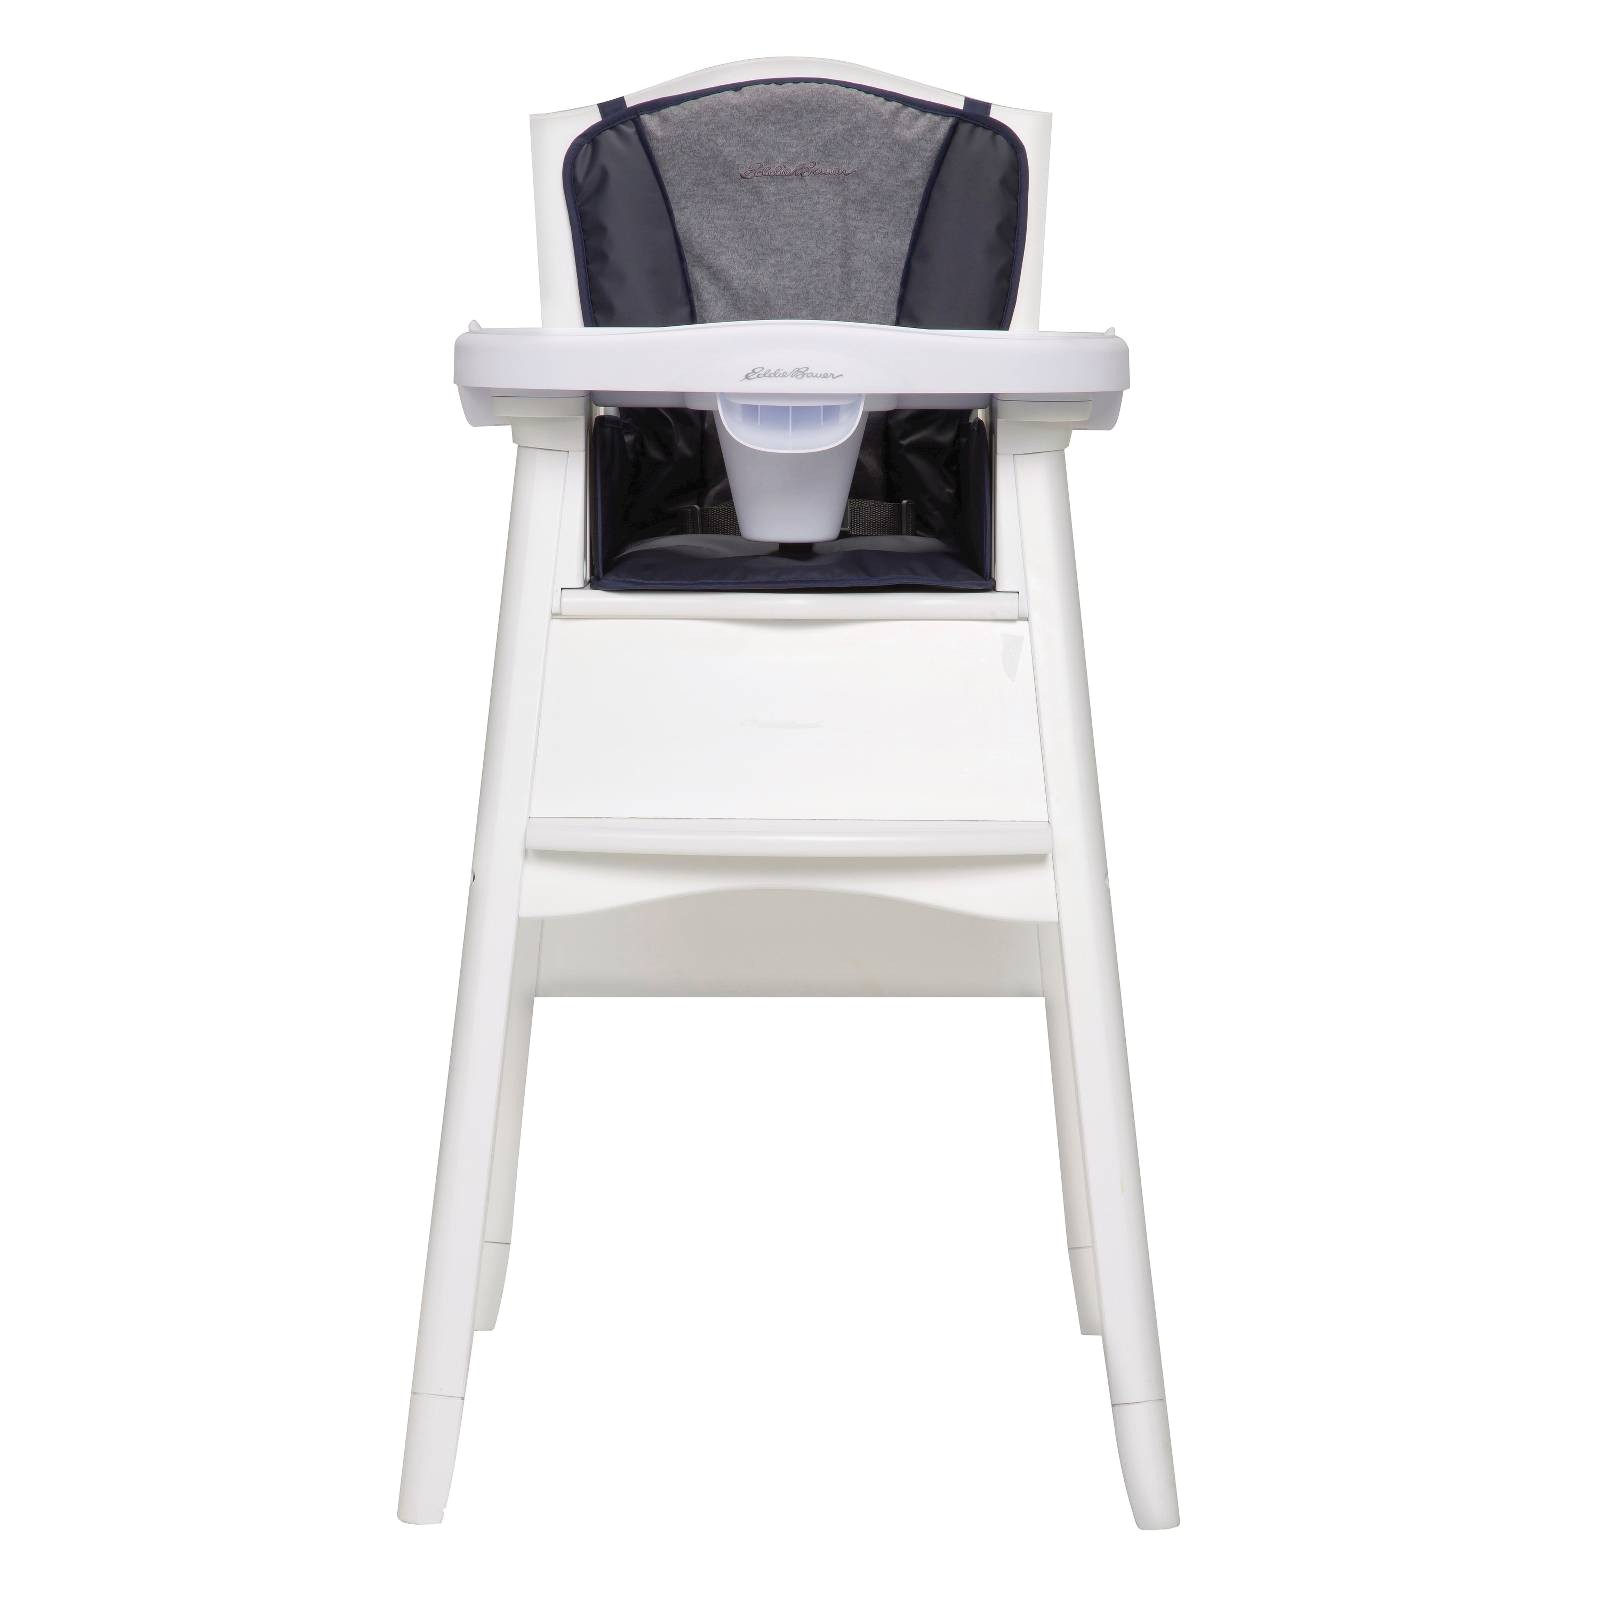 Eddie Bauer High Chair Cover Amazon Eddie Bauer Deluxe 3 In 1 High Chair Ebay